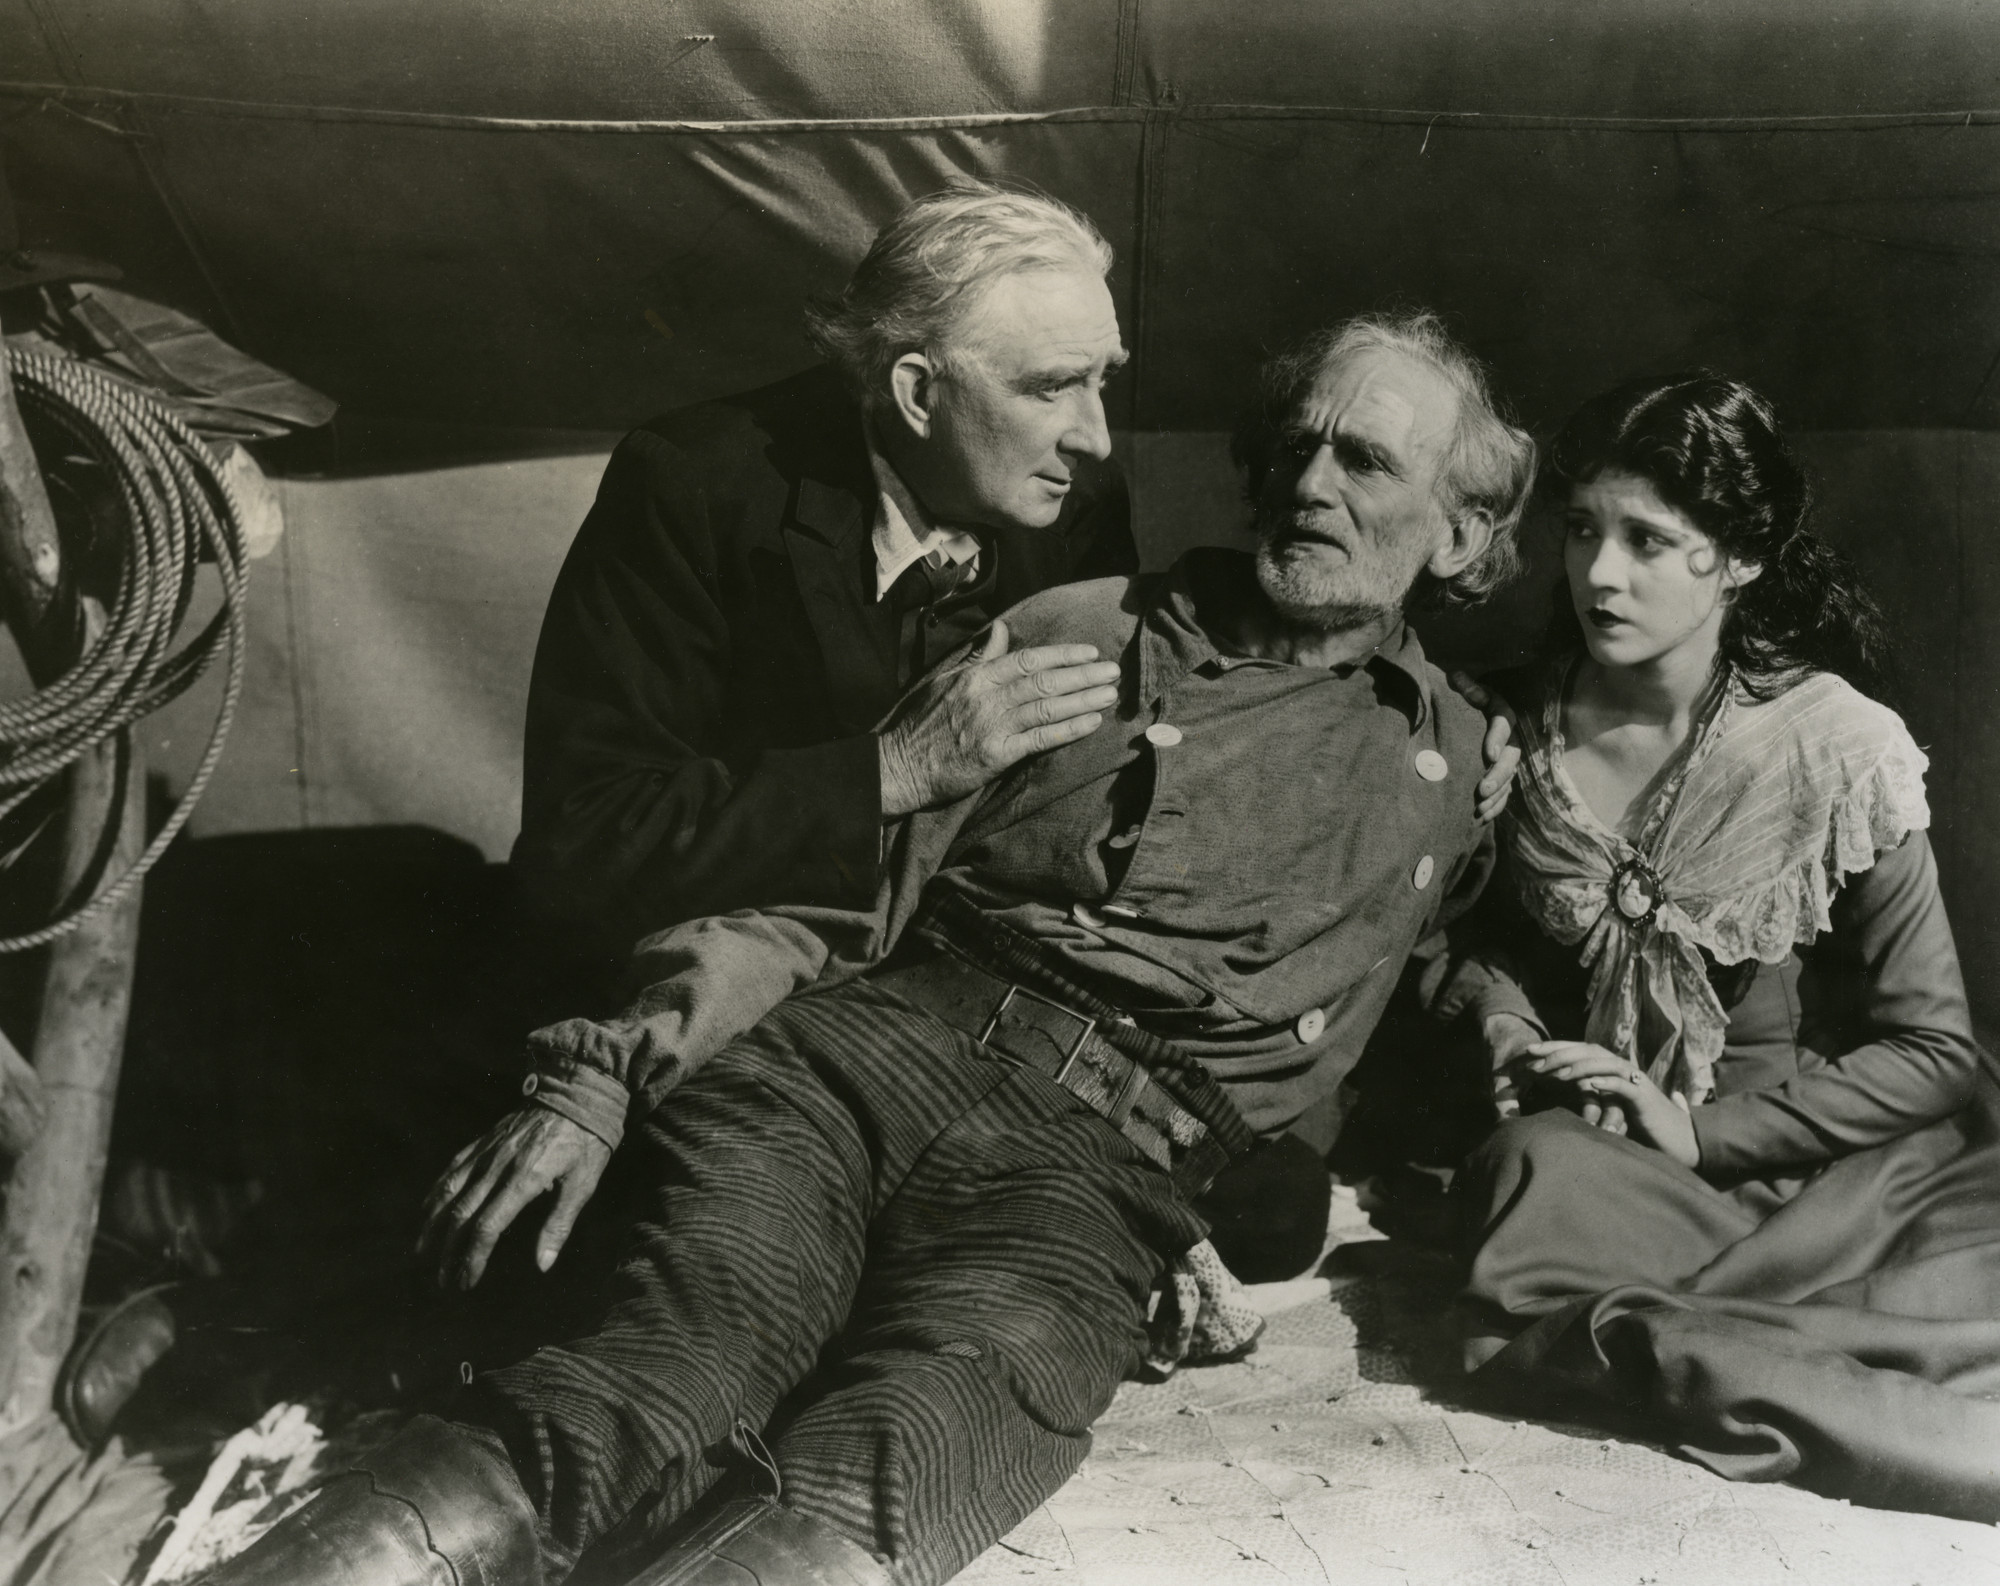 3 Bad Men. 1926. Directed by John Ford | MoMA